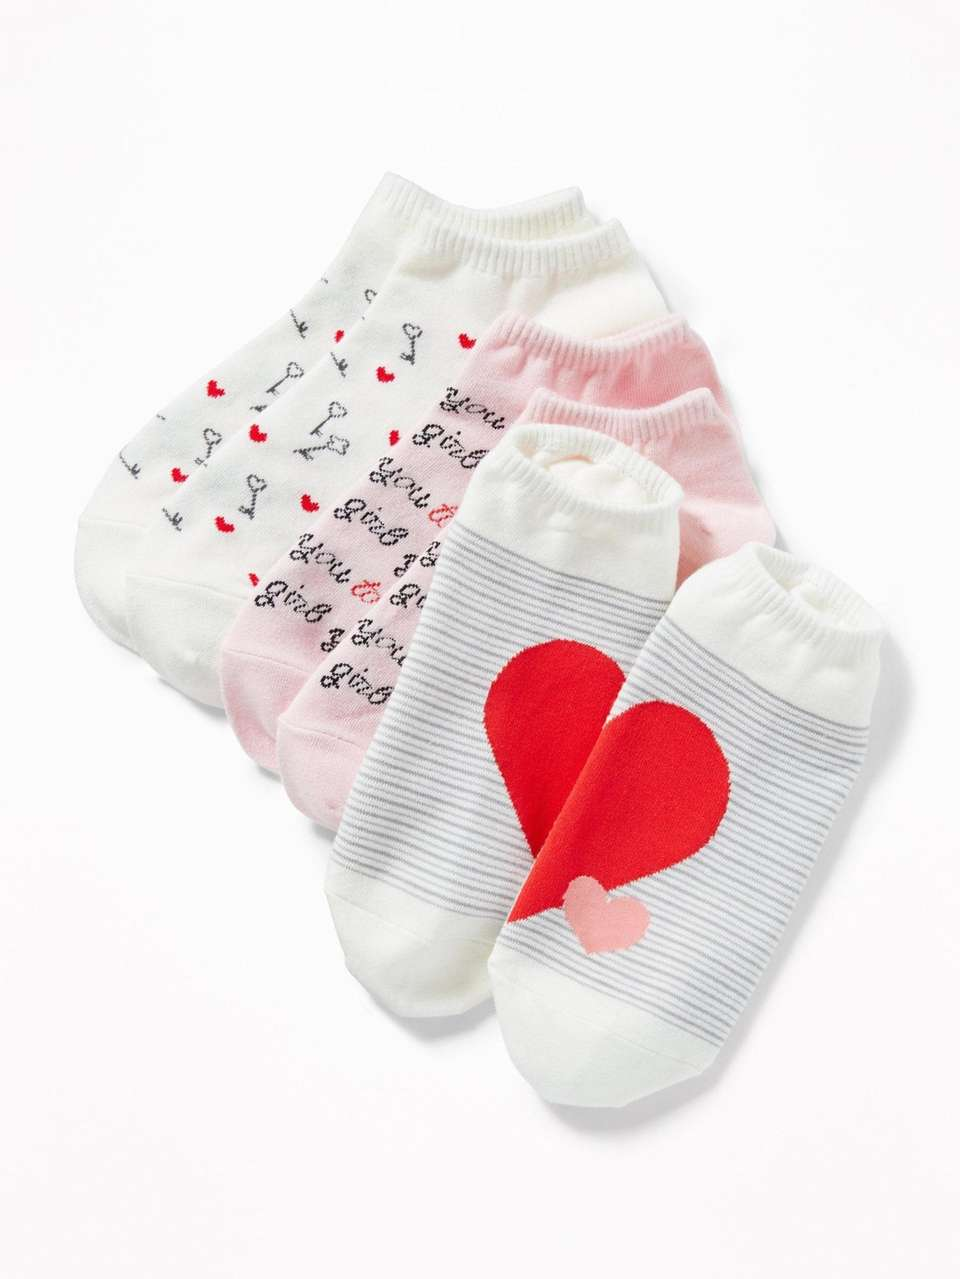 This three-pack of ankle socks are made from